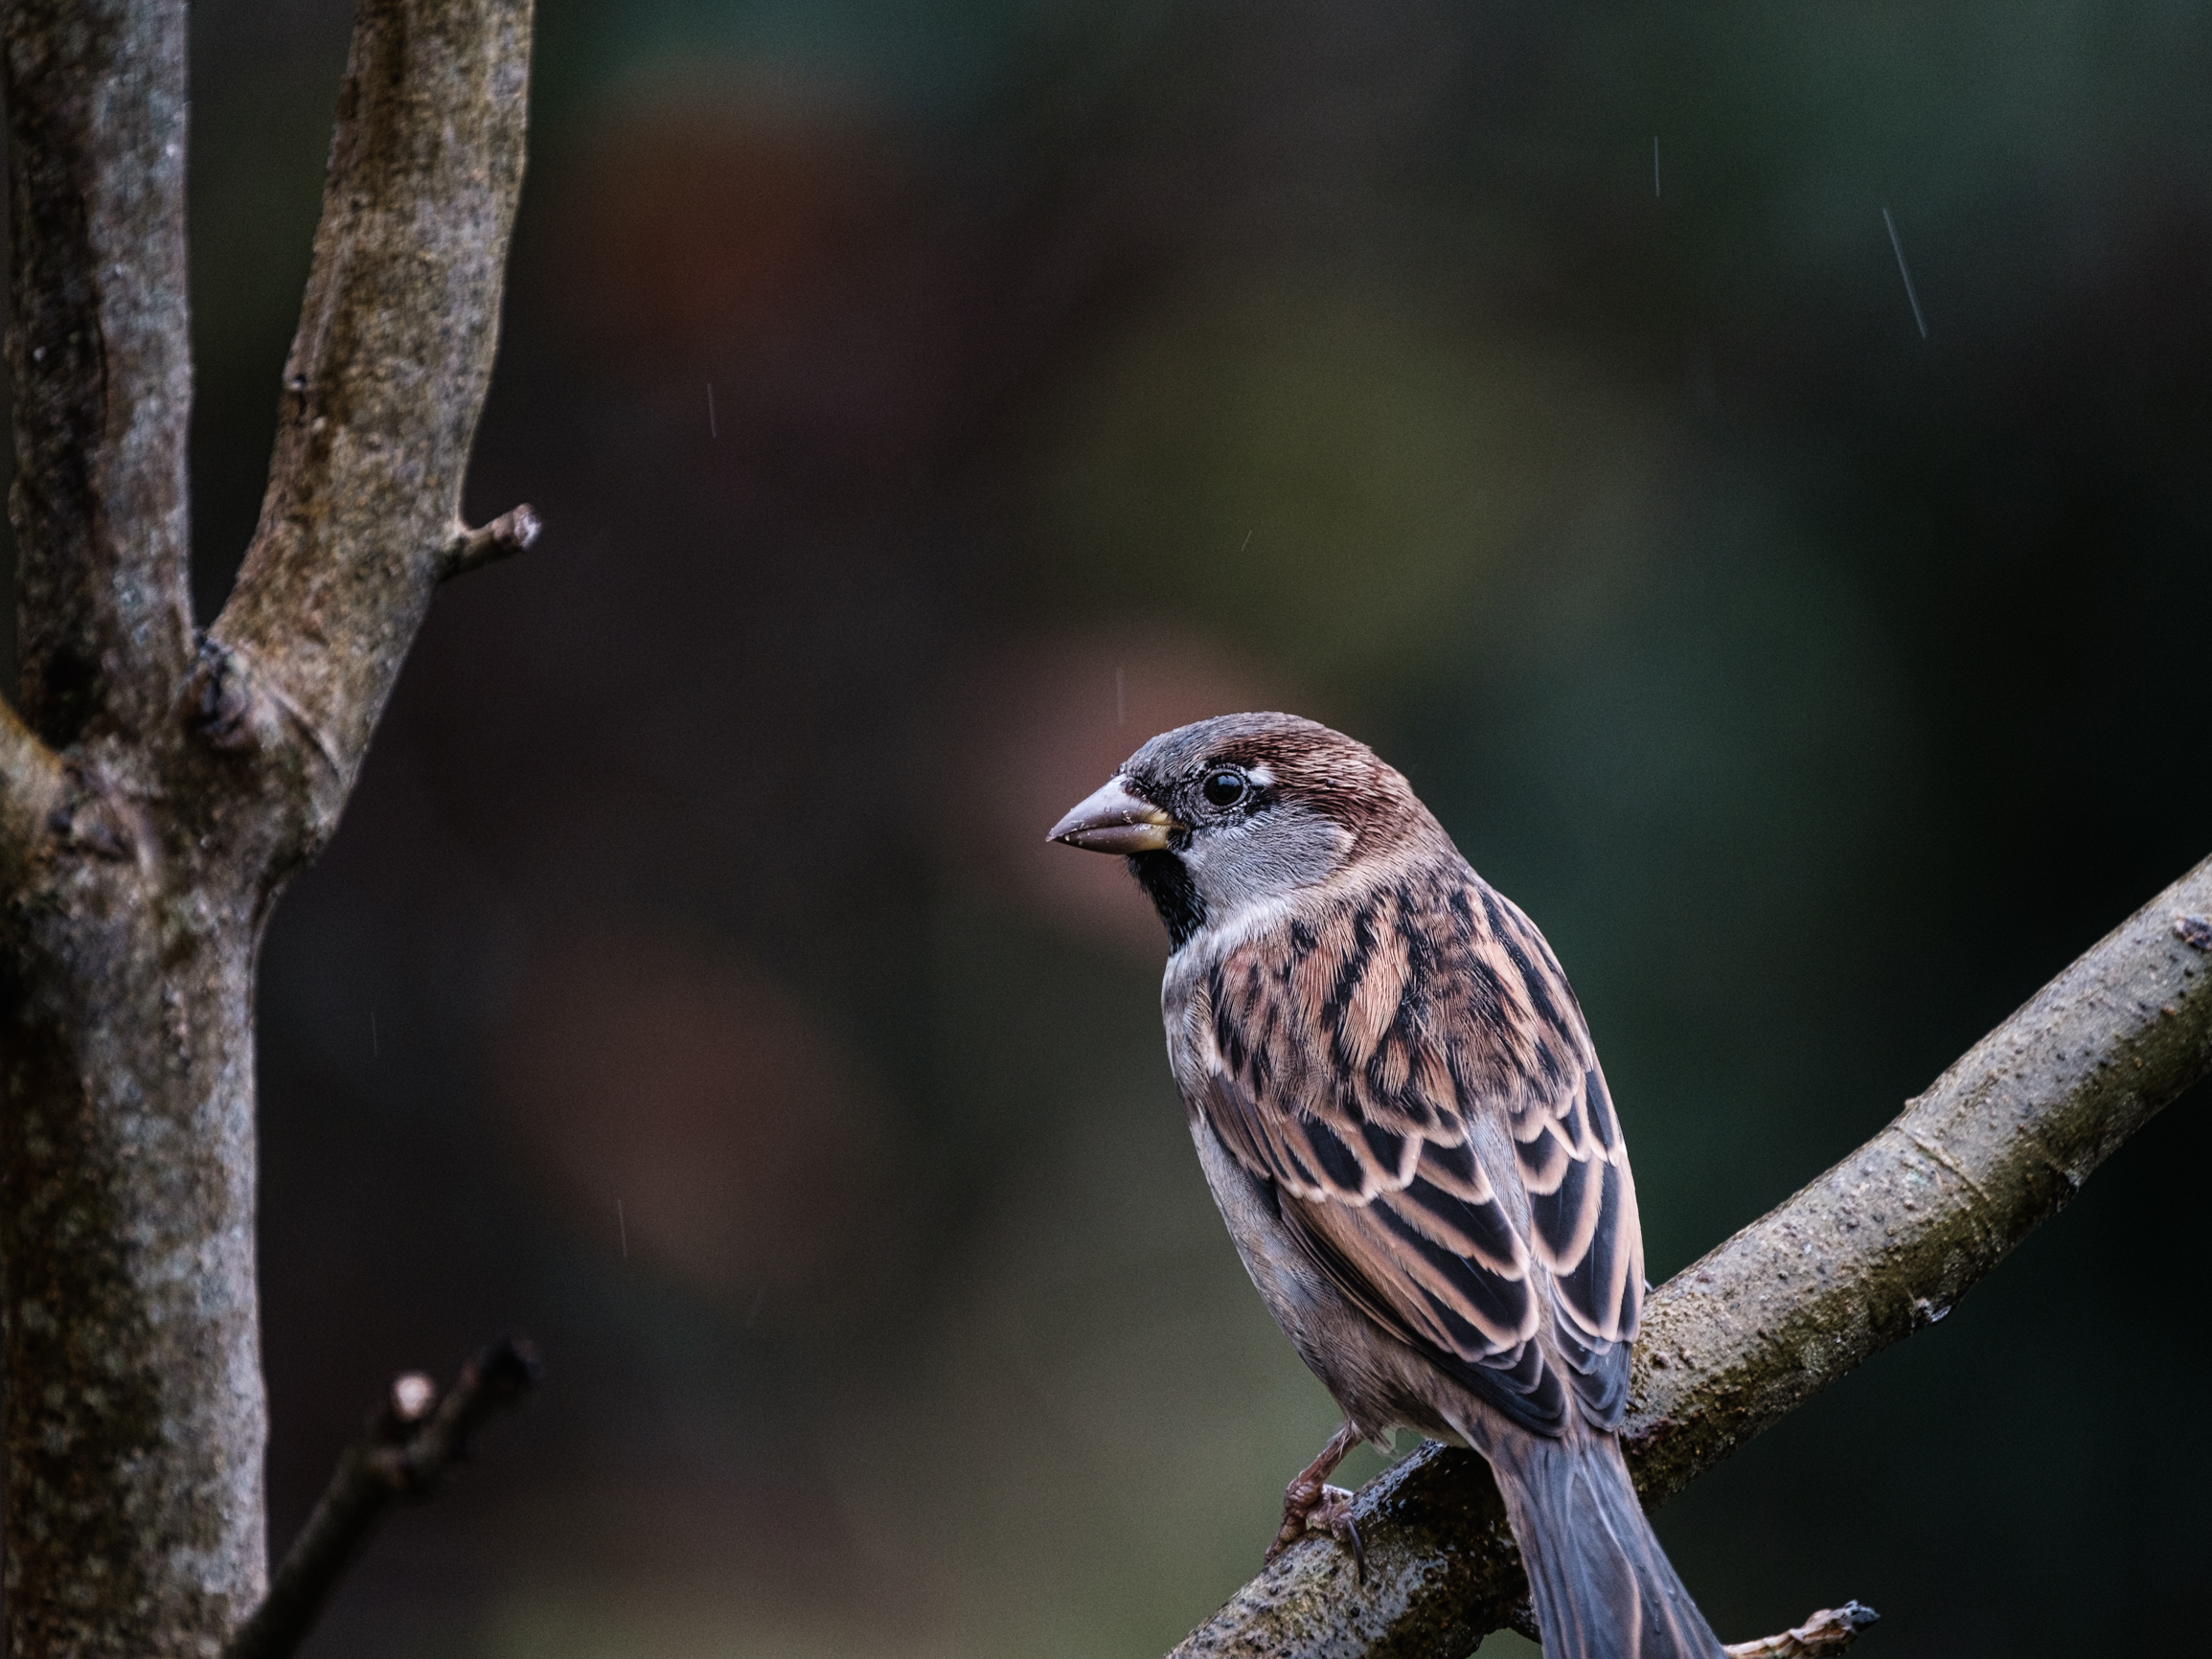 Beautiful bird perched on a branch